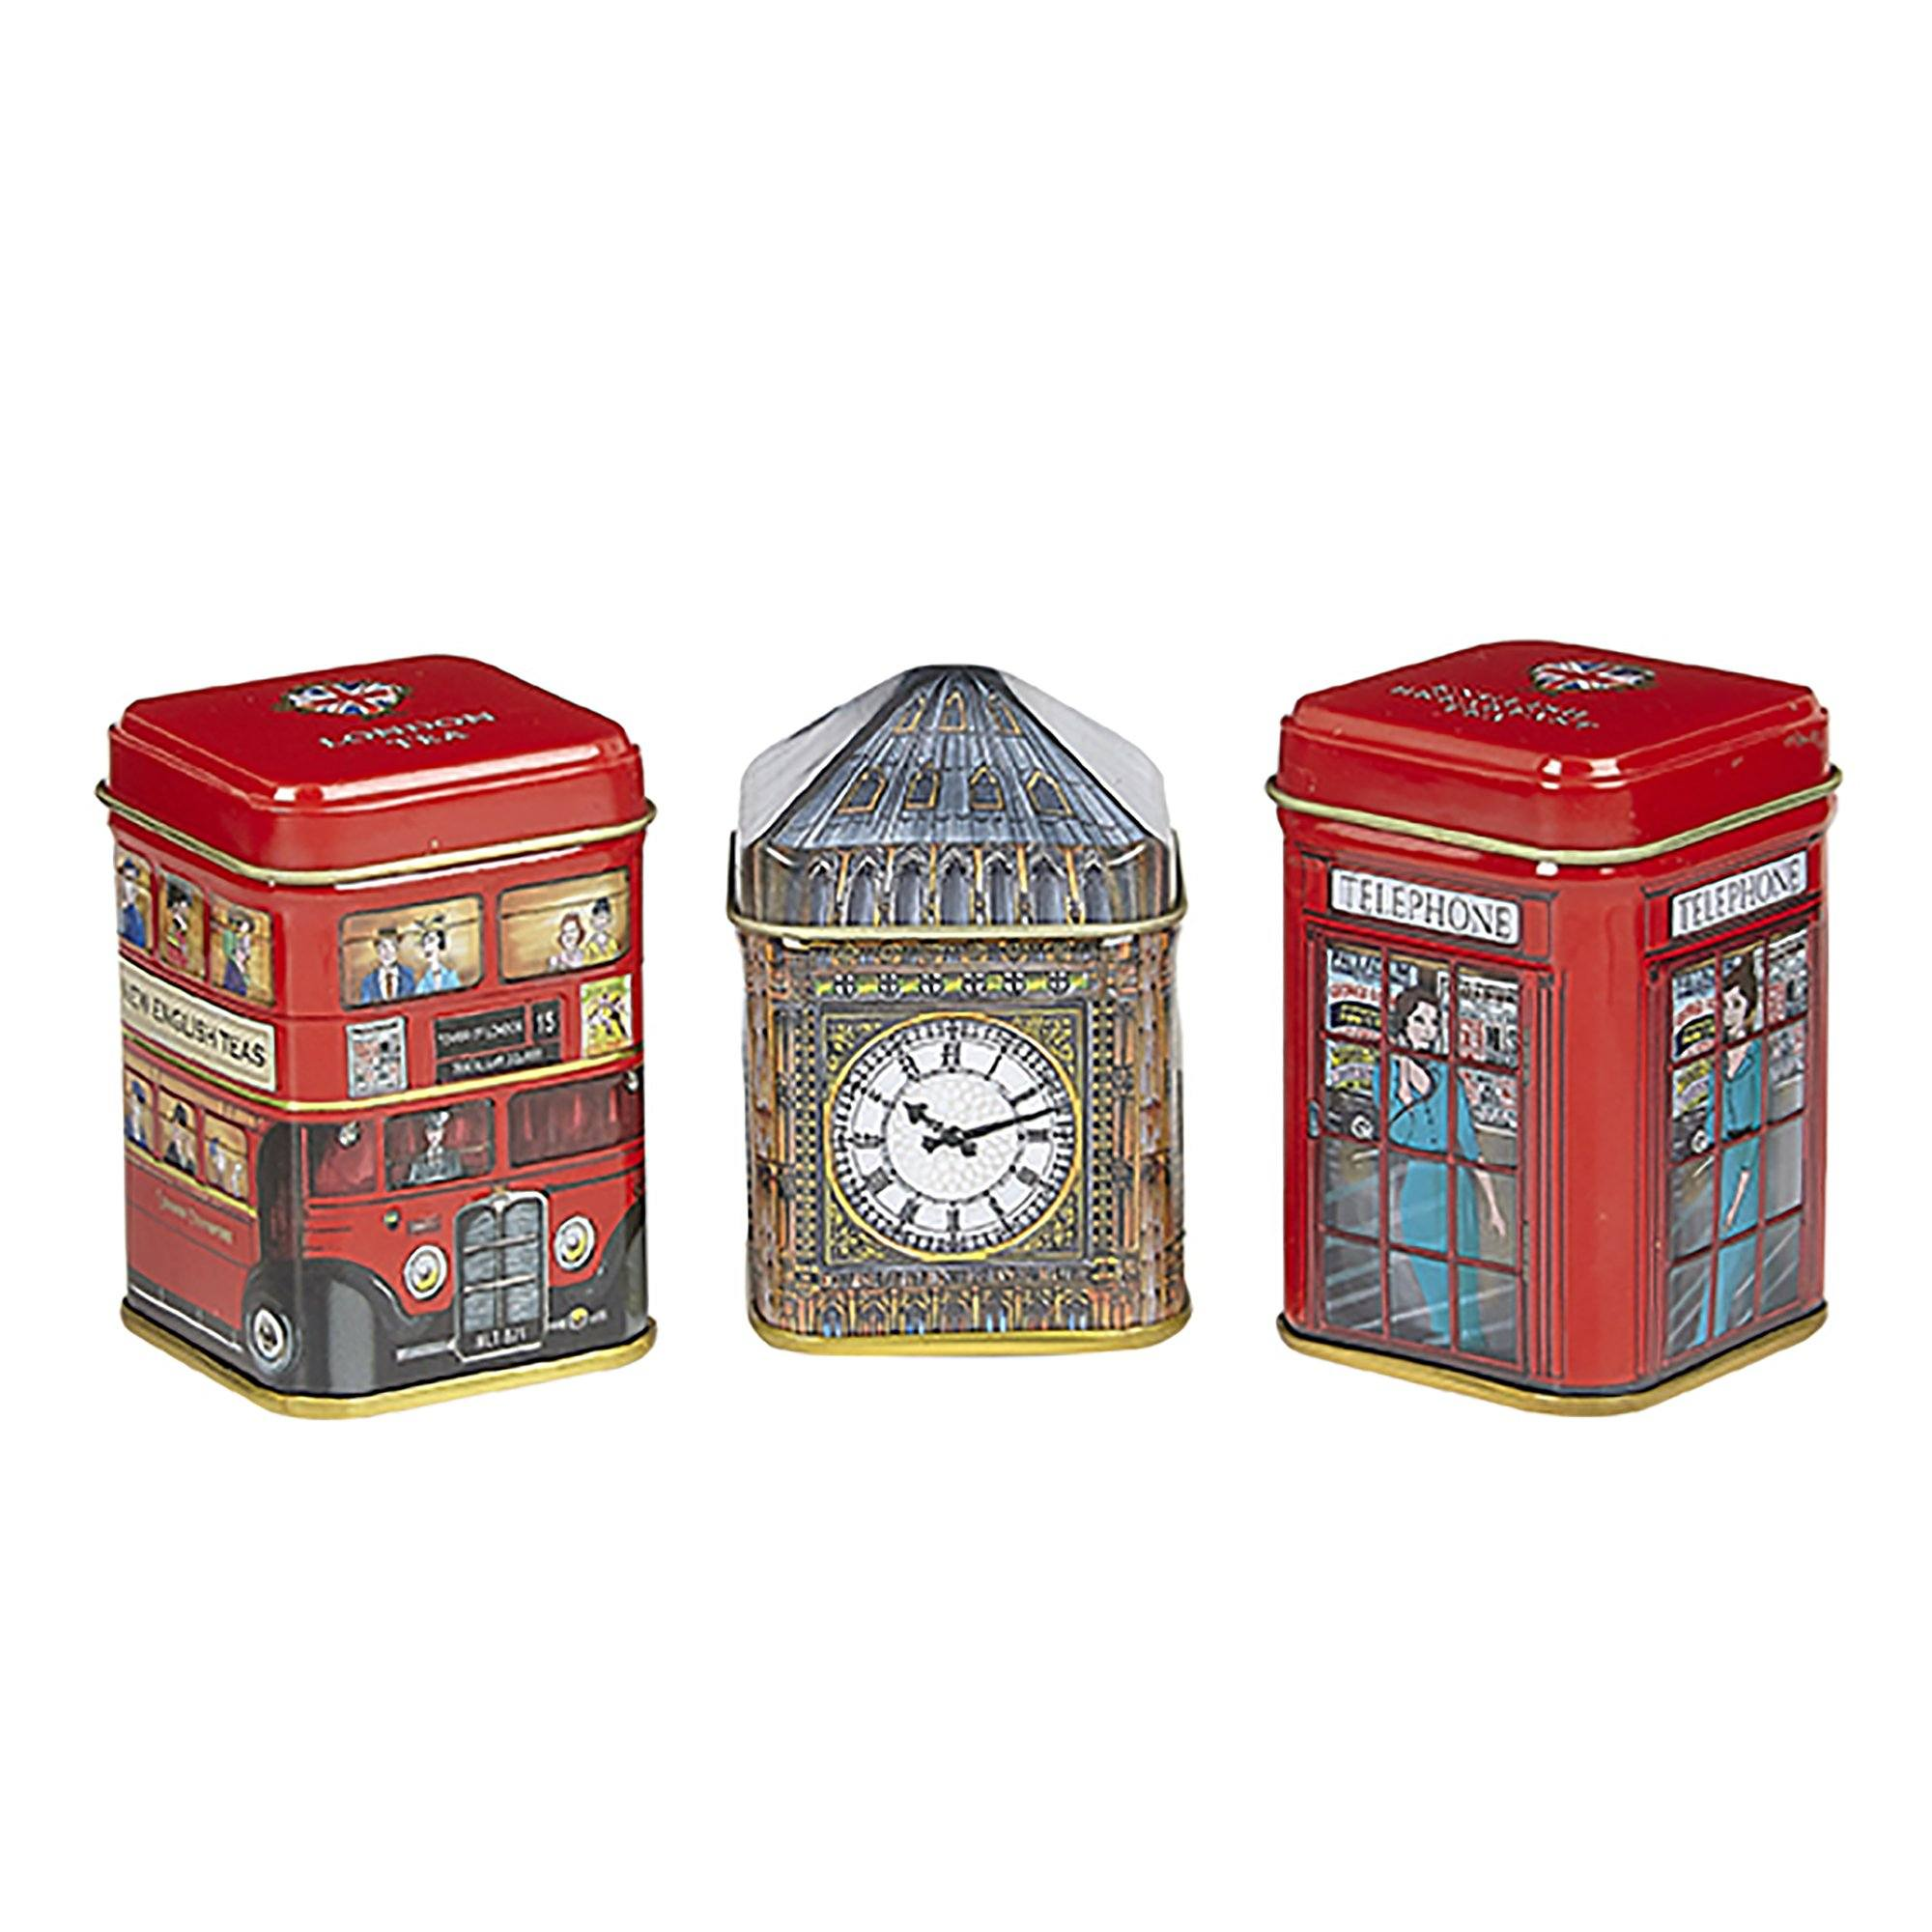 Traditions of London Triple Tea Selection Mini Tin Gift Pack Black Tea New English Teas